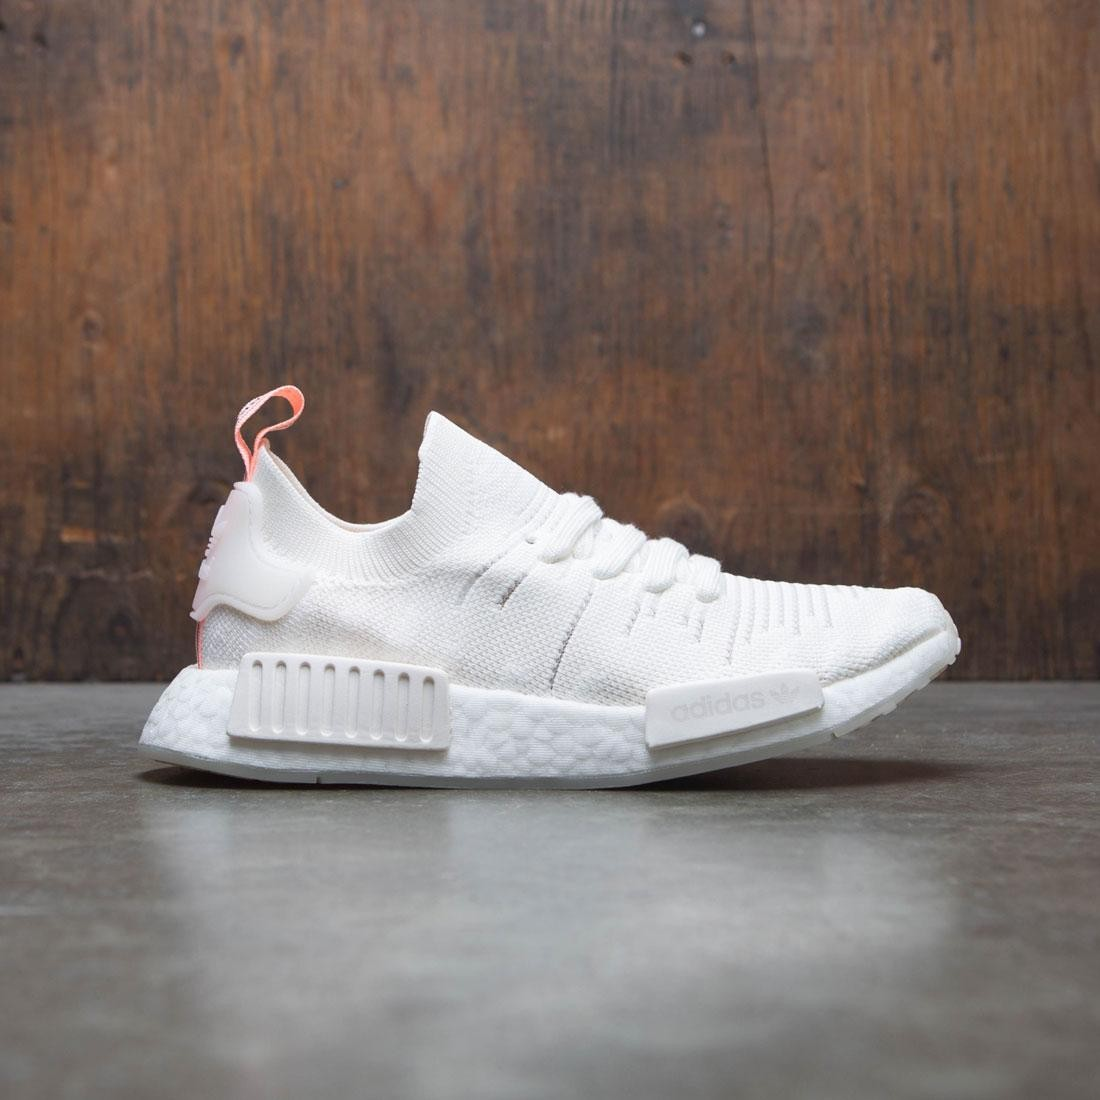 Adidas Women NMD R1 STLT PK W (white / cloud white / clear orange)